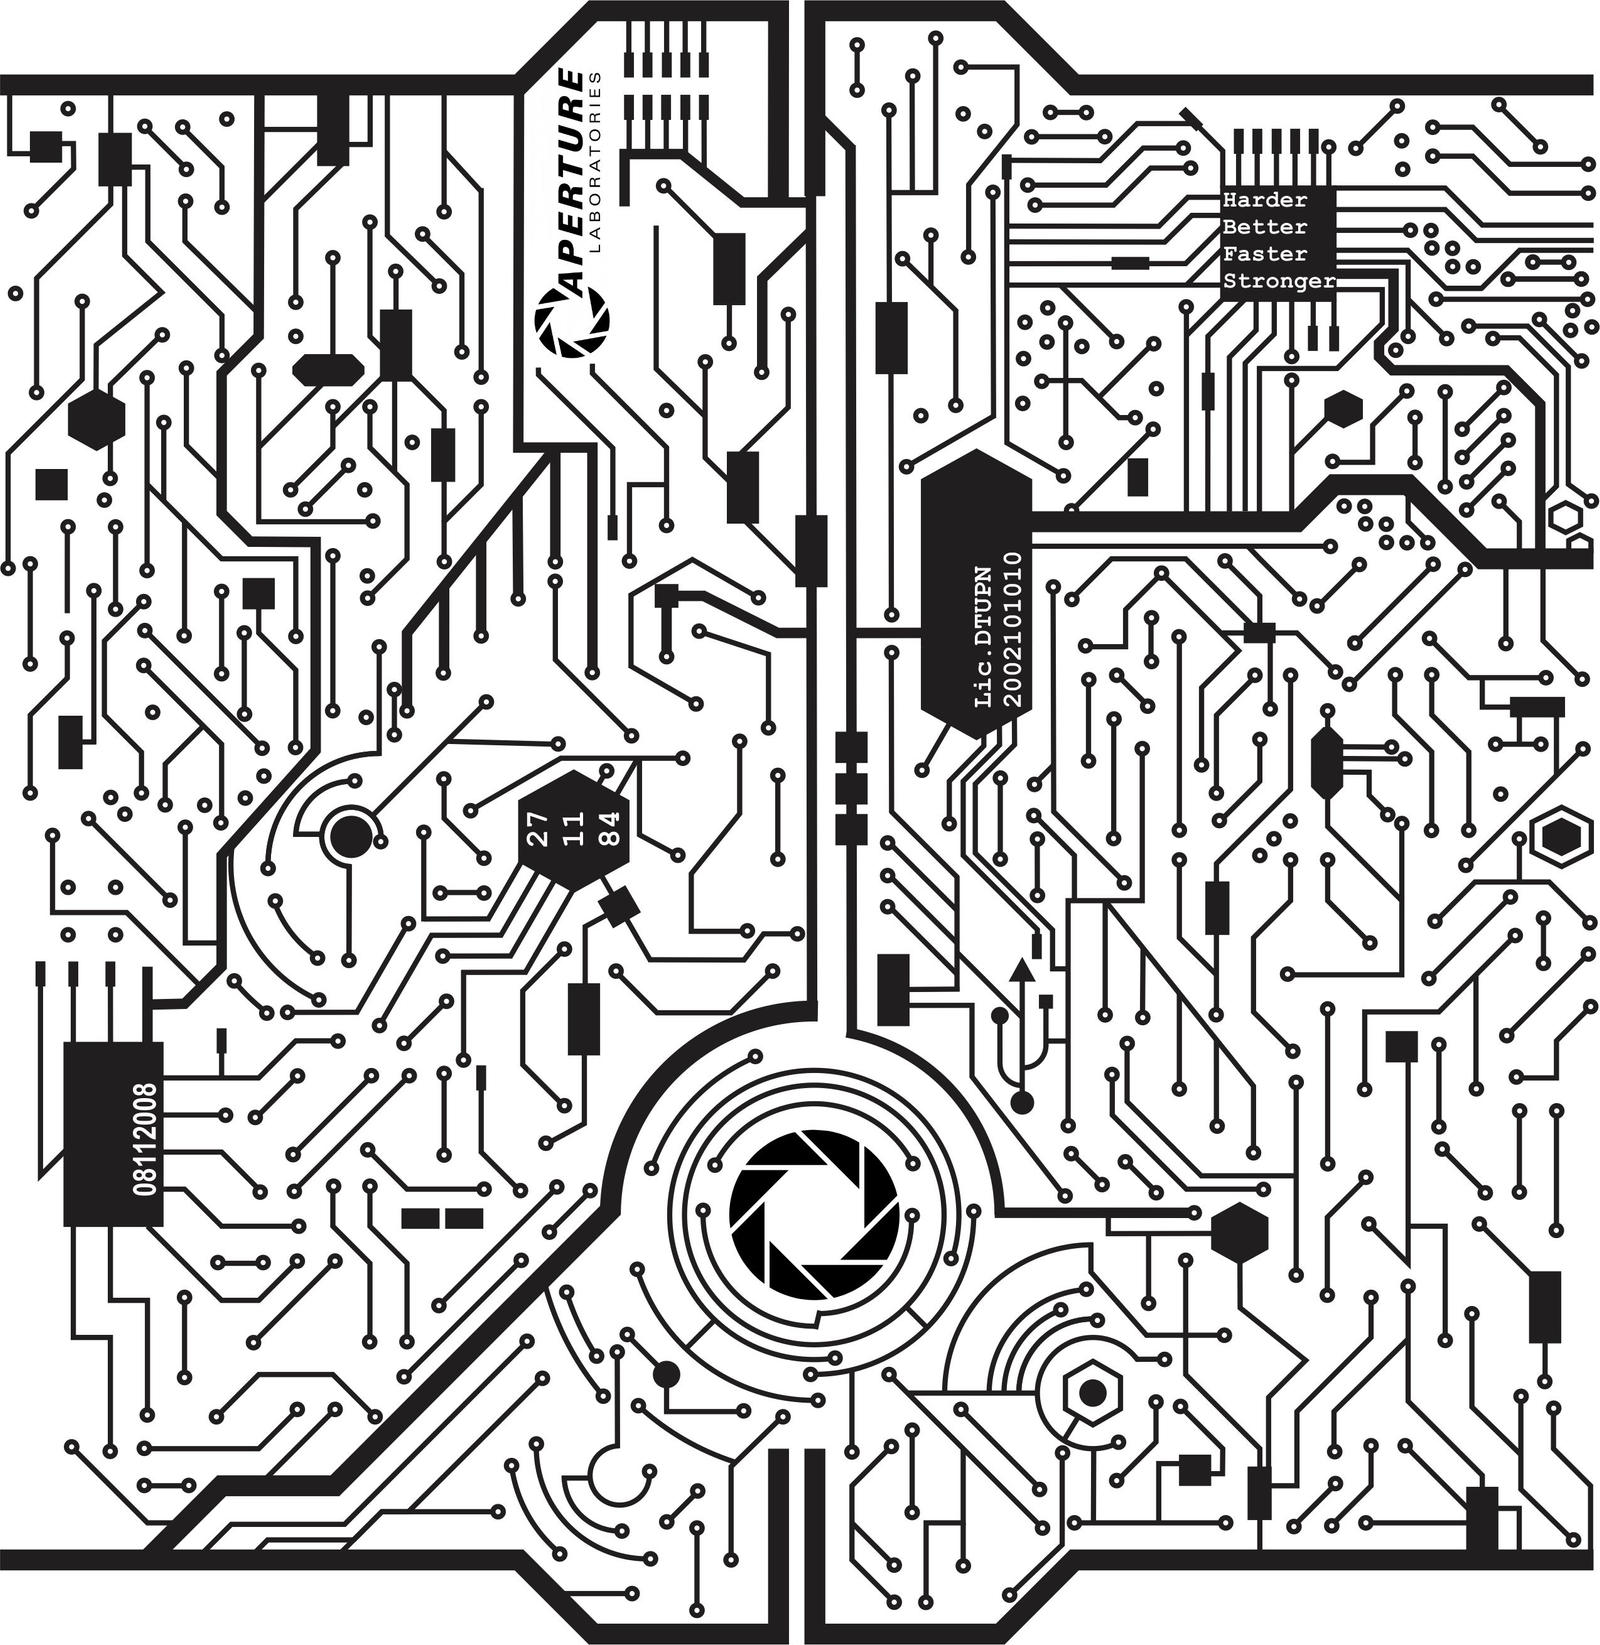 circuit tattoo  sketch  by kmykse84 on deviantart